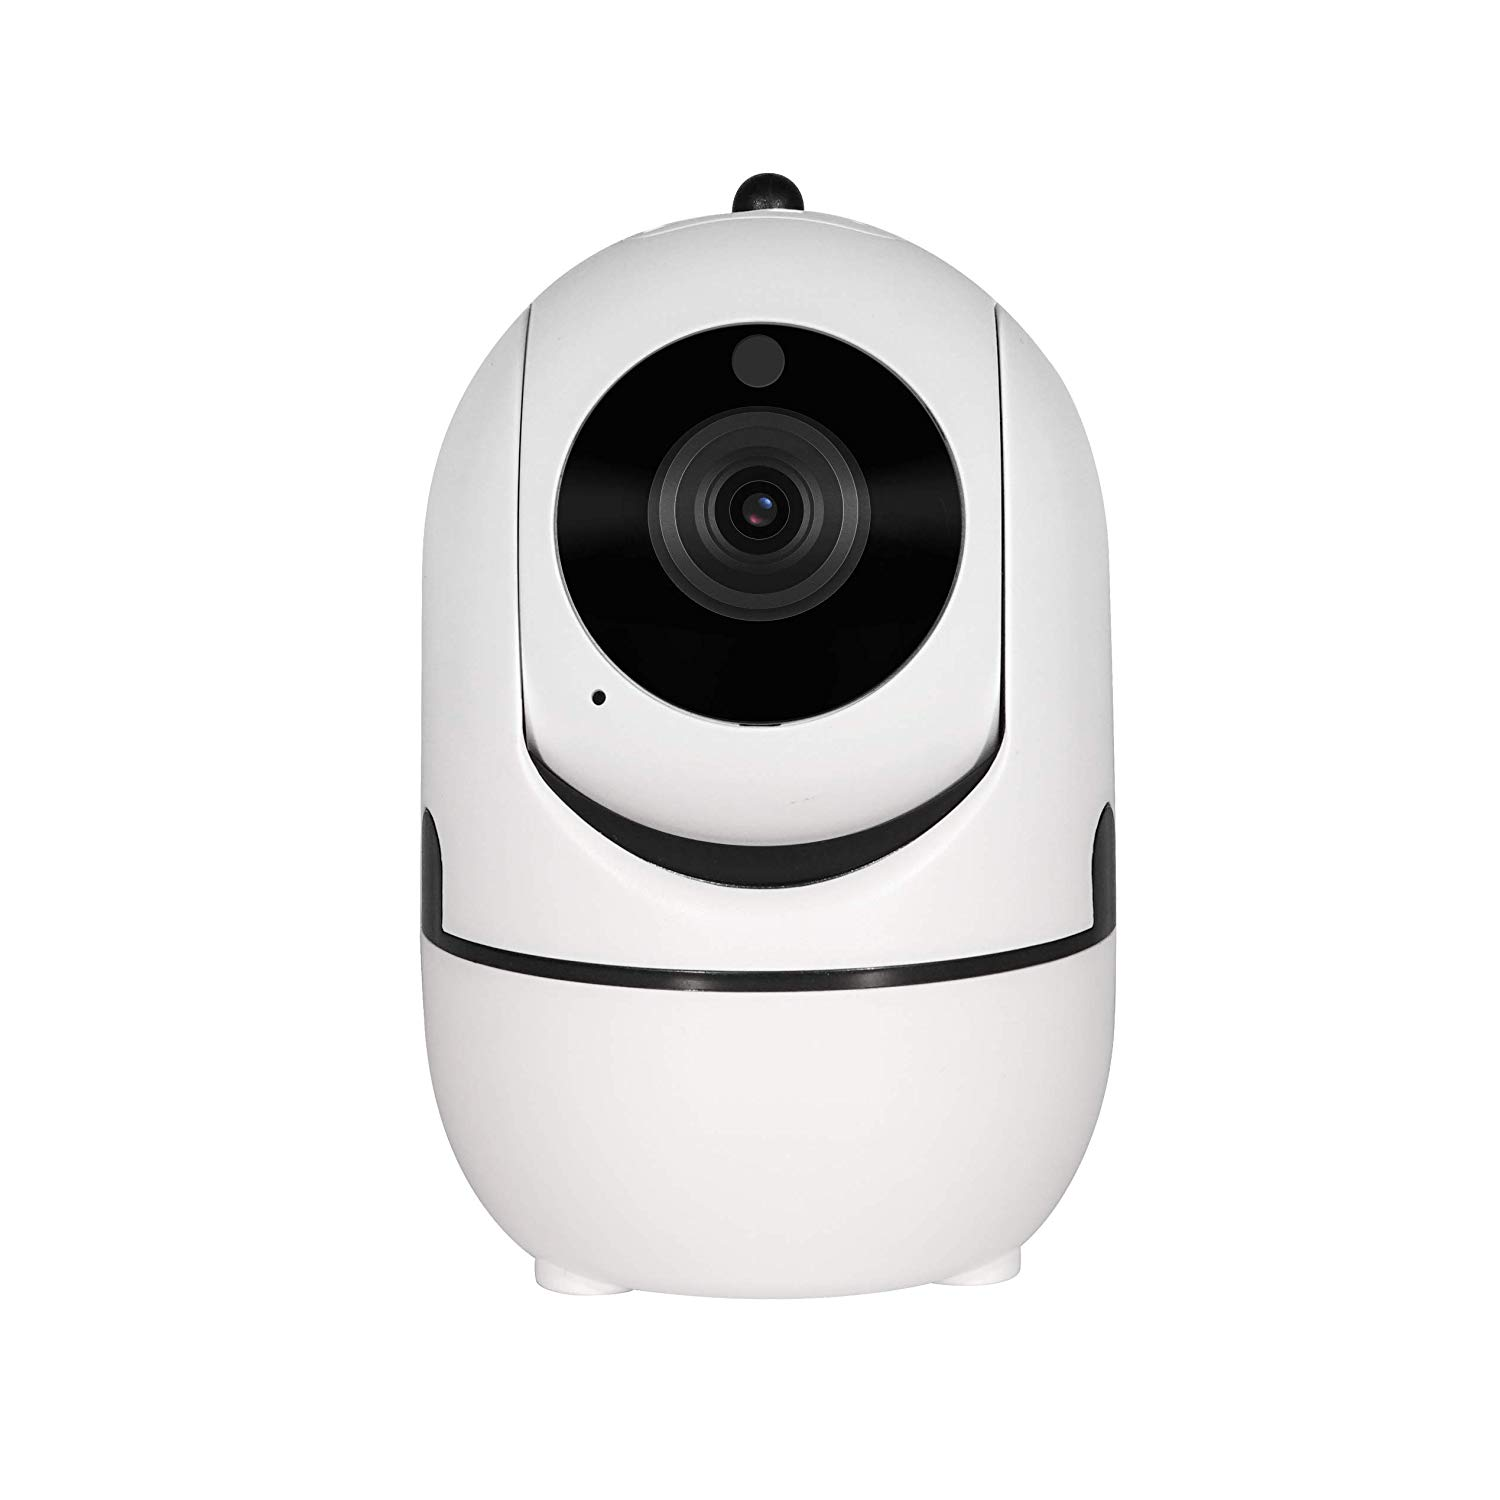 WIRELESS SMART IP CAMERA  HD  YCC 365 ANDROID+IOS UP TO 128M STORAGE لاقط واحد مع حساس حركه ,Security Cameras